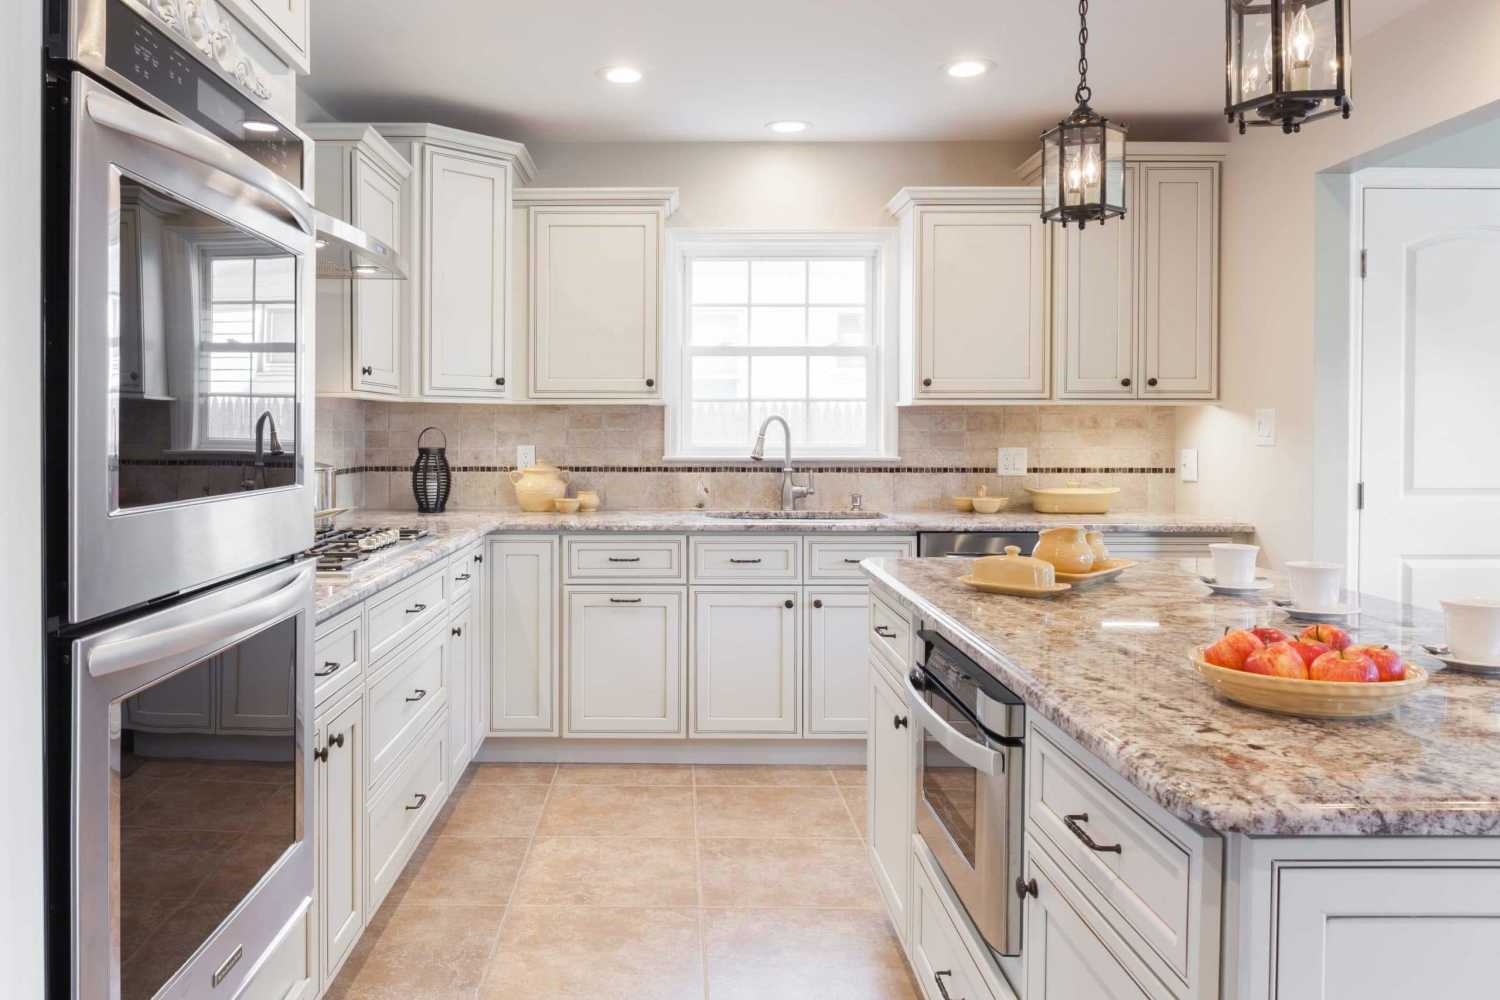 Difference Between Cambria, Silestone, and Corian Quartz Countertops